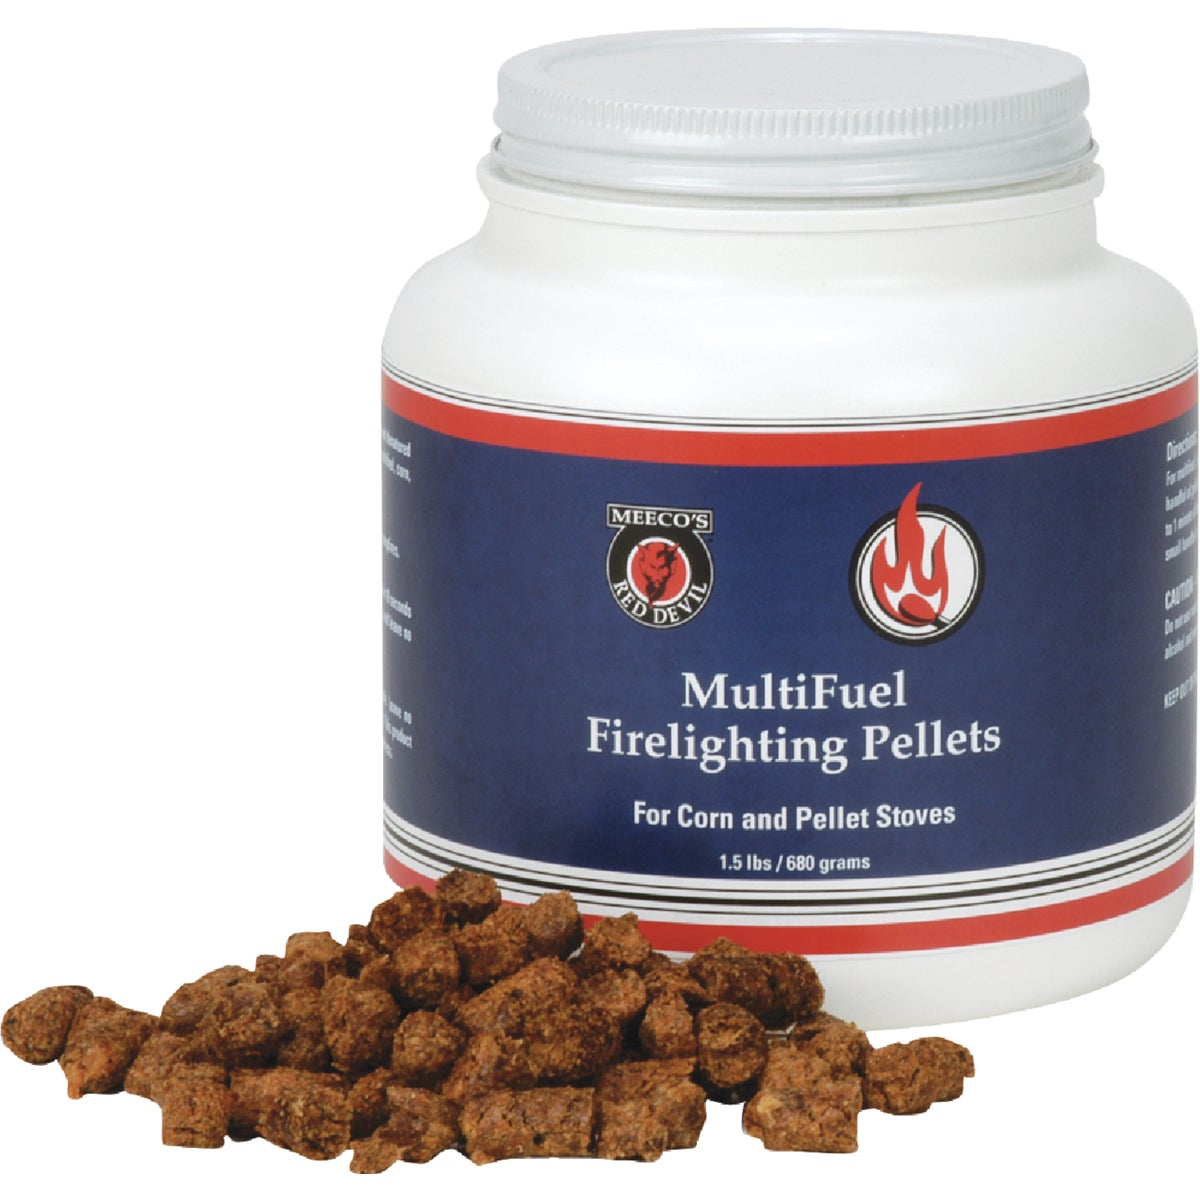 INSTANT FIRE PELLETS - 417 by Meeco Mfg